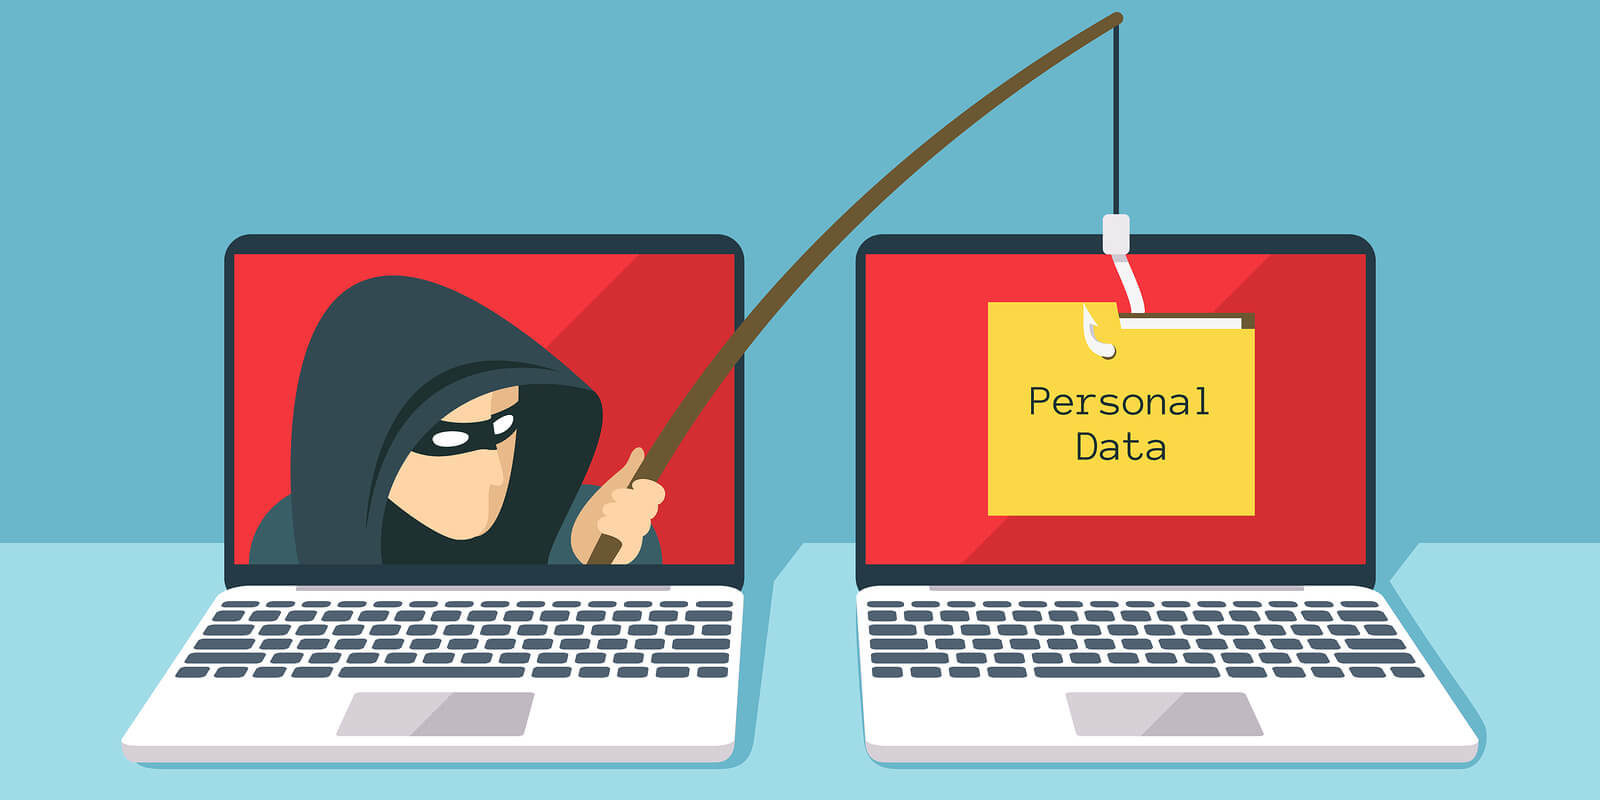 [Personal experience) Online financial scam schemes